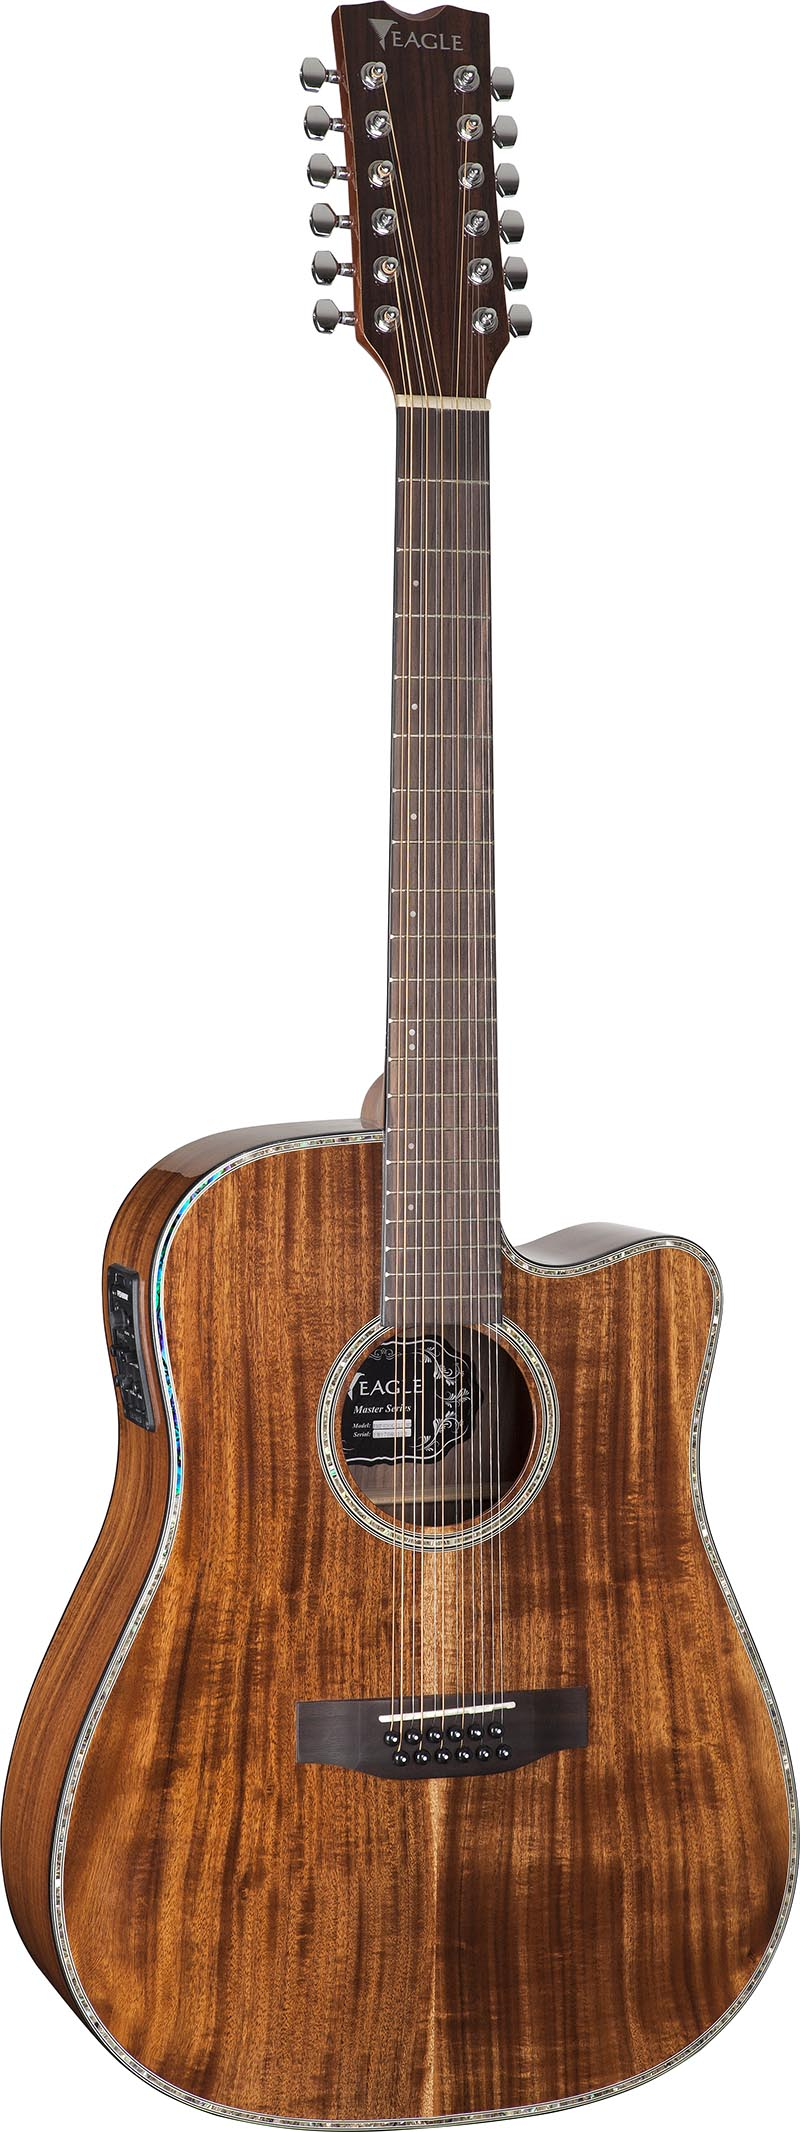 emd430ce12 violao 12 cordas folk dreadnought tampo solido eagle emd430ce12 nt natural visao frontal vertical